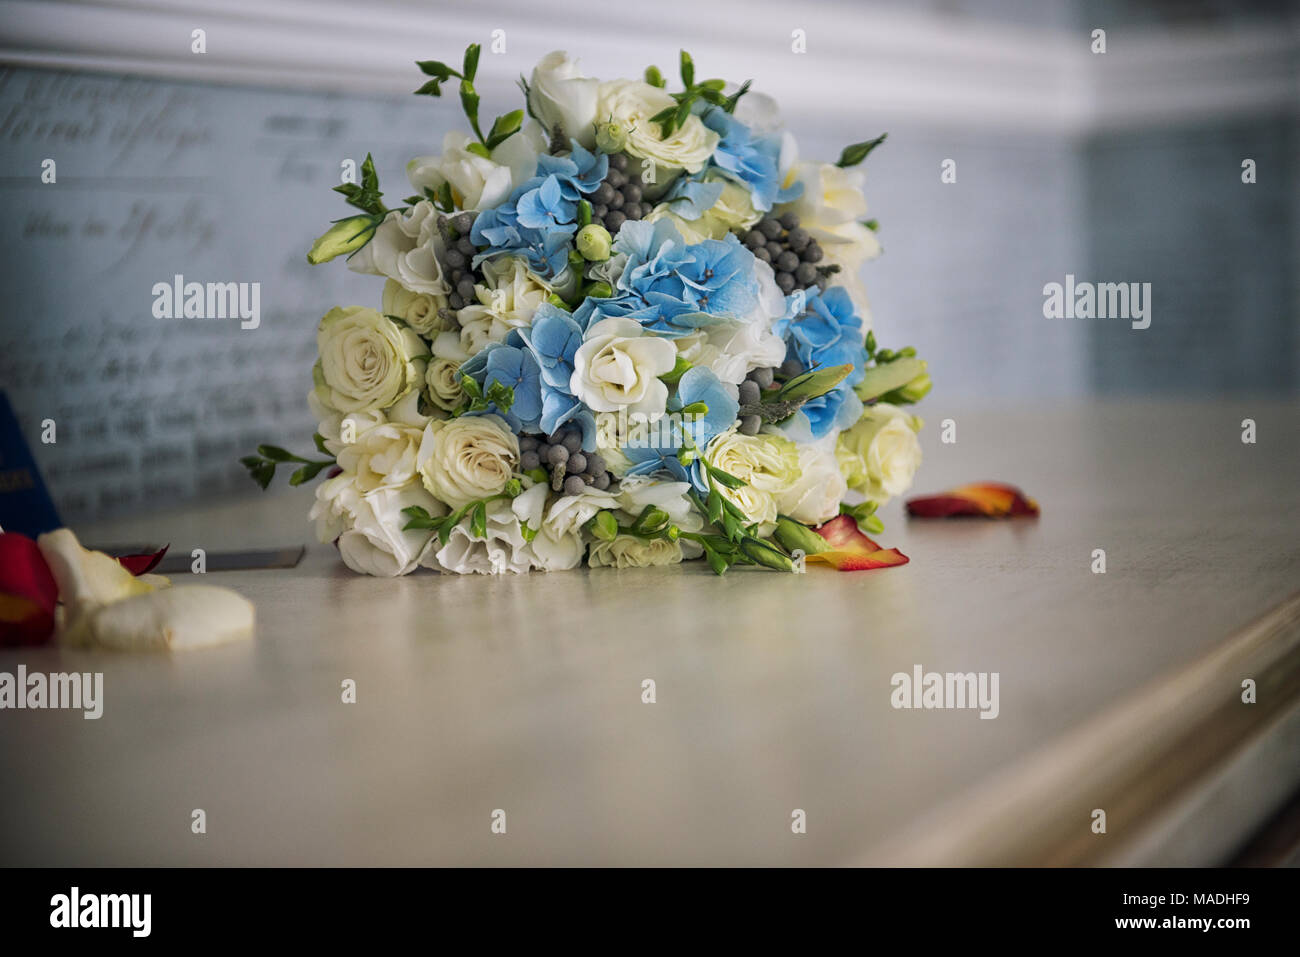 Valentines Day or wedding bouquet. background with flower - Stock Image